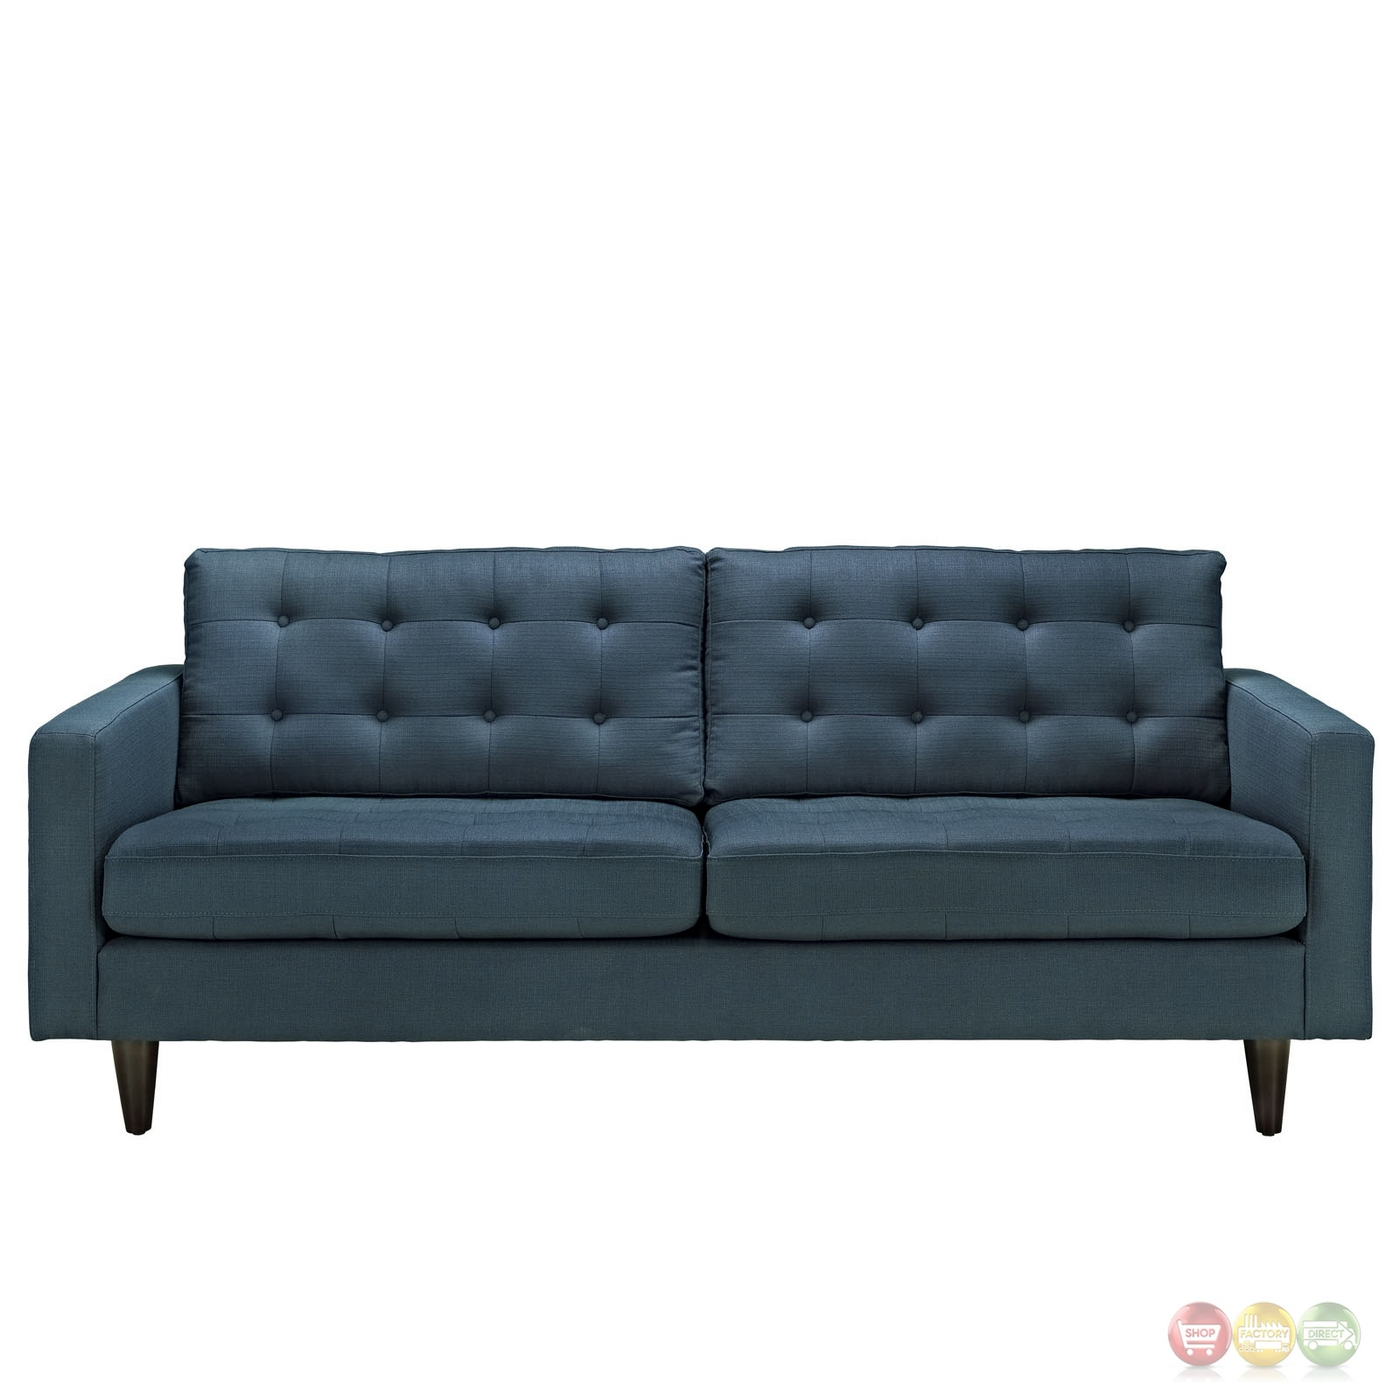 Empress contemporary button tufted upholstered sofa azure for Contemporary sofa